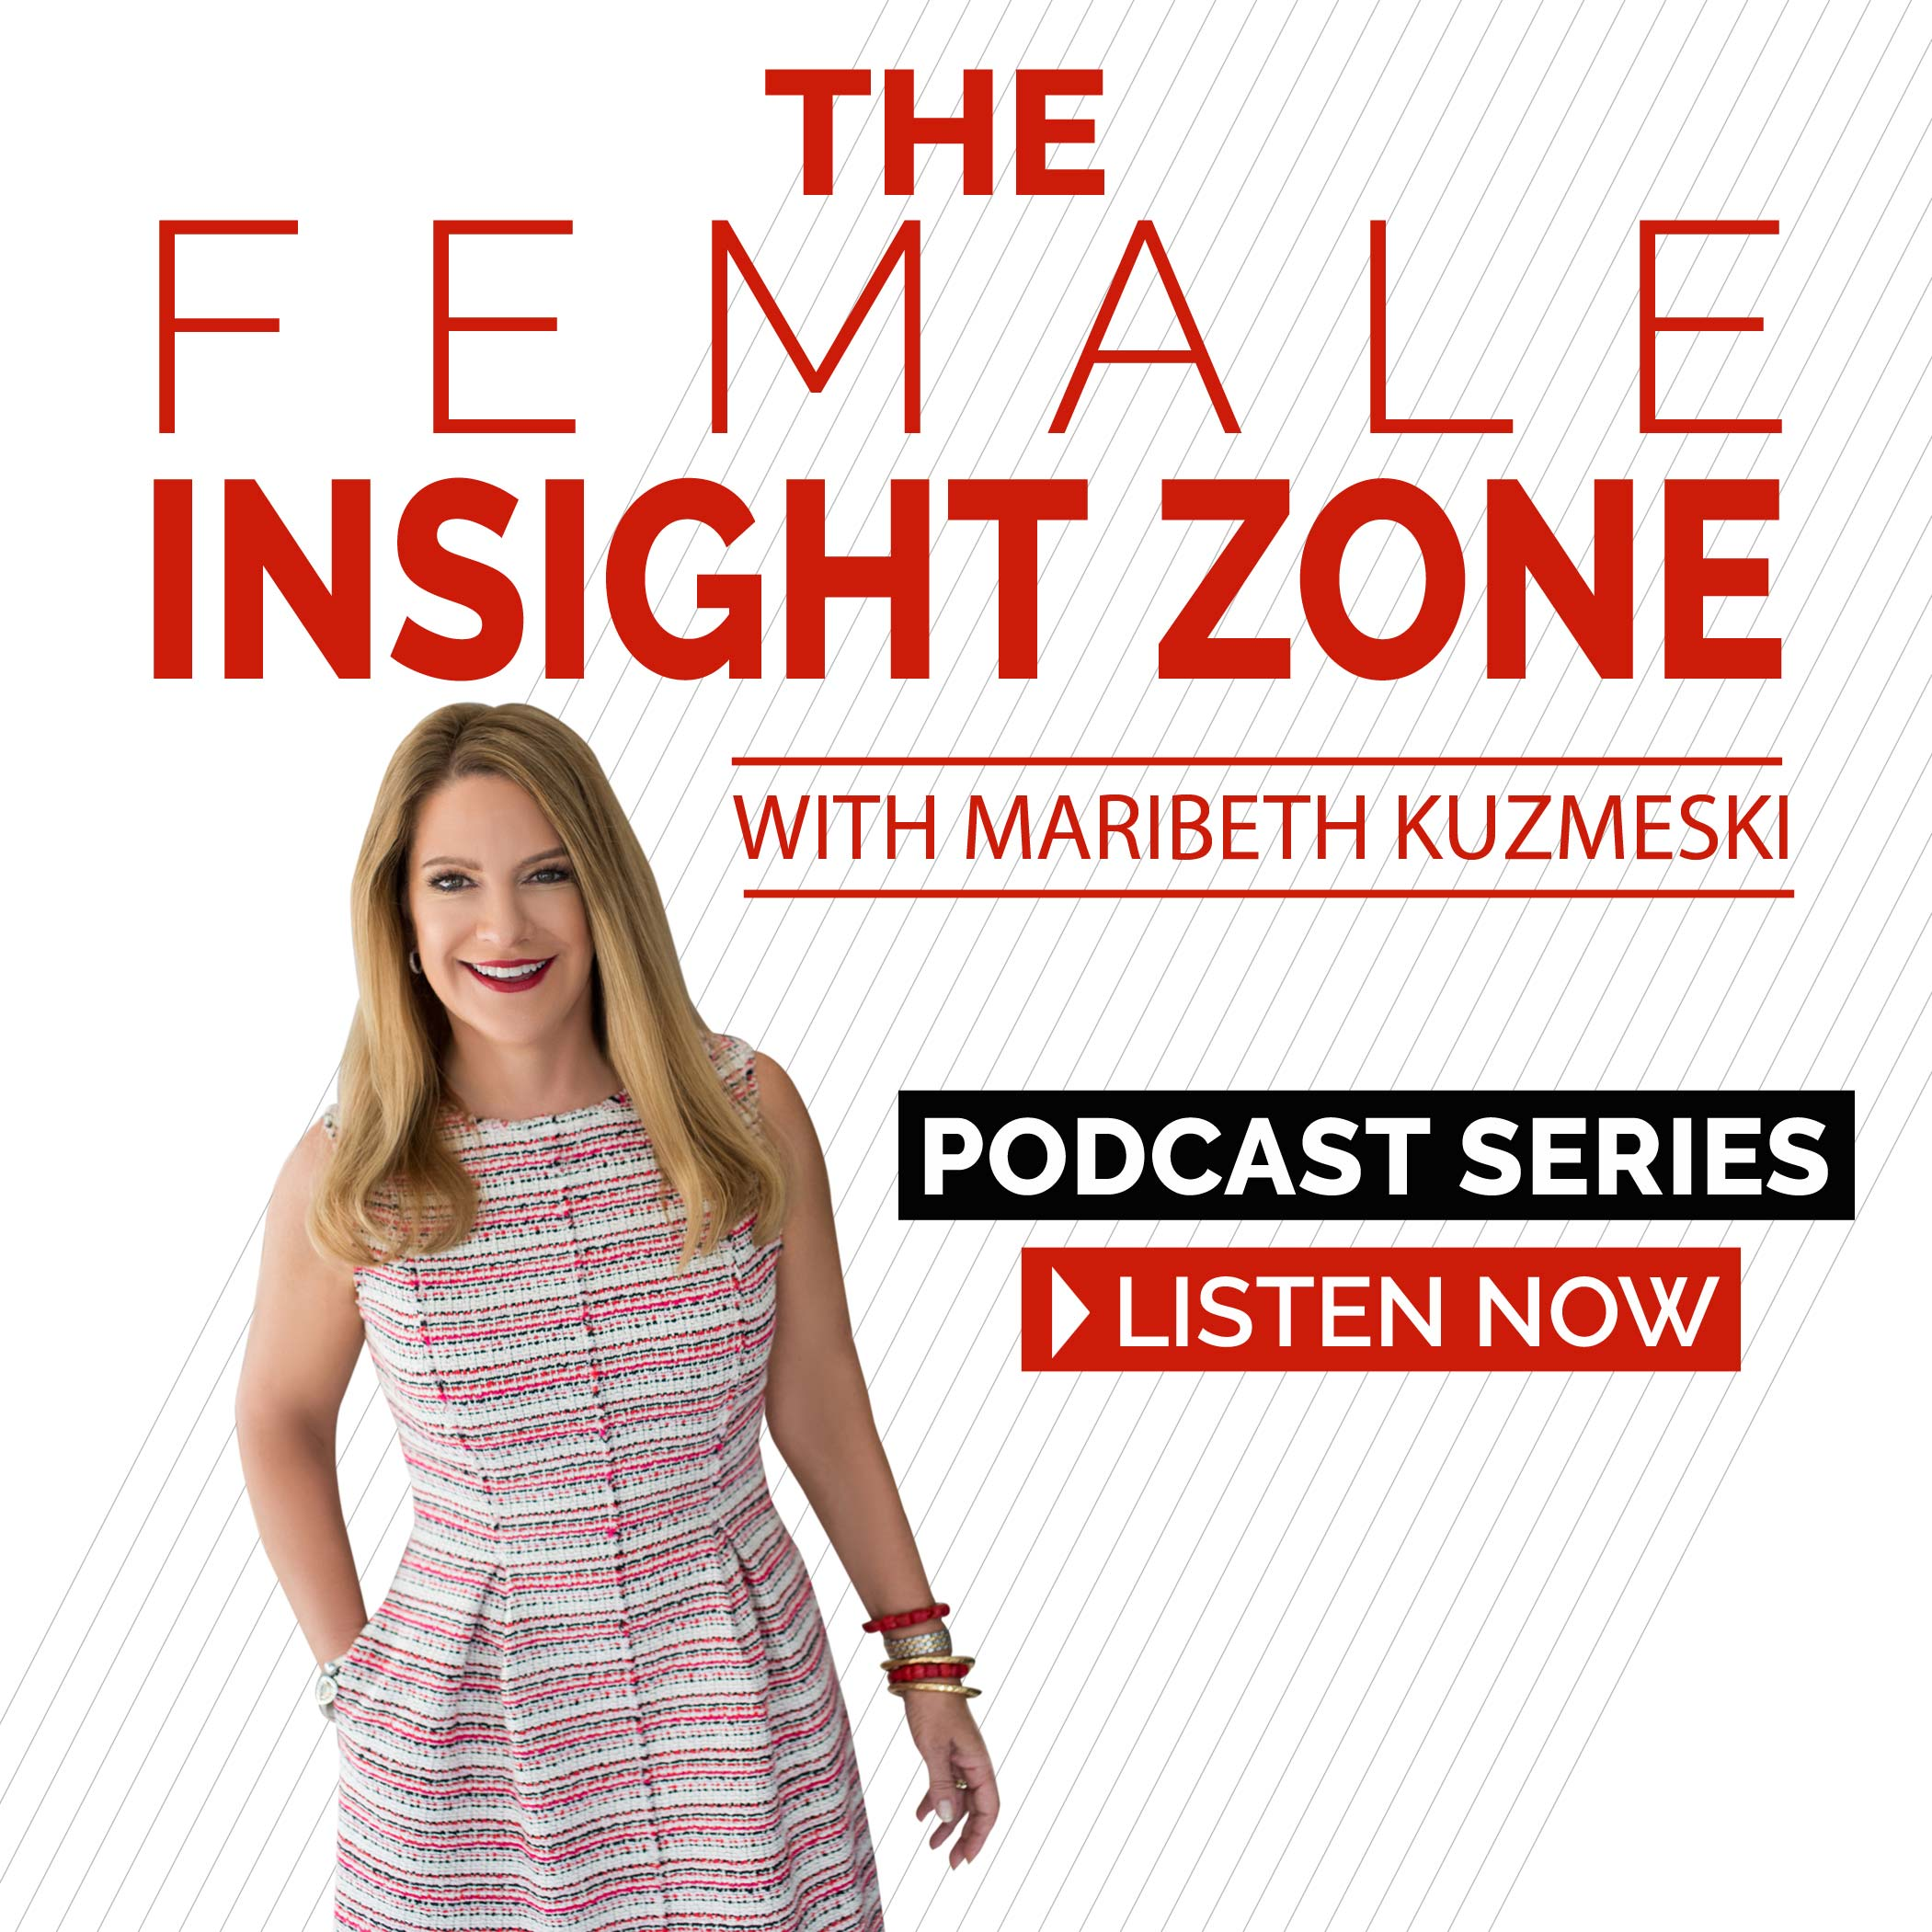 The Female Insight Zone